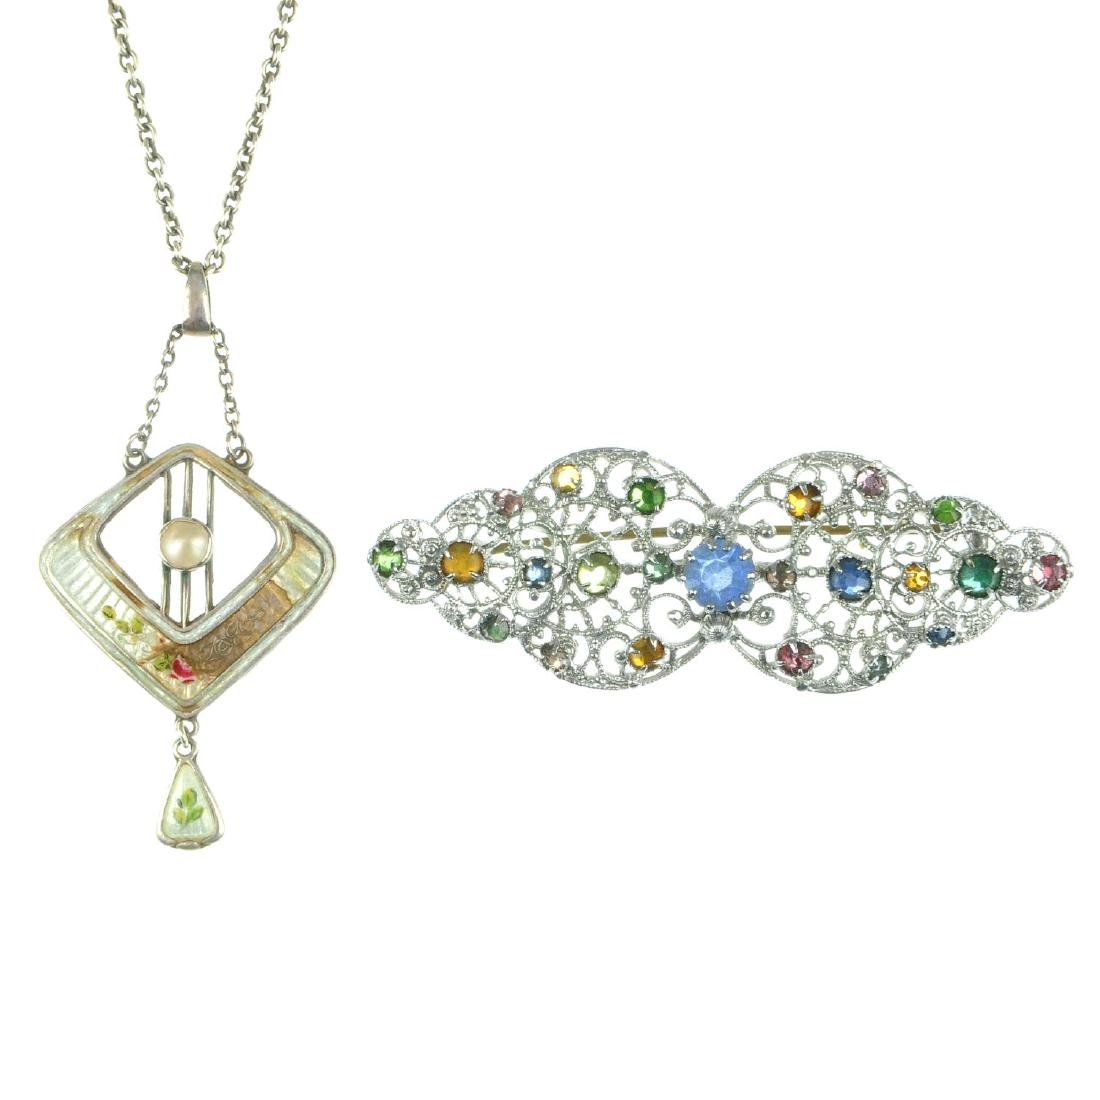 A Charles Horner pendant and a selection of jewellery